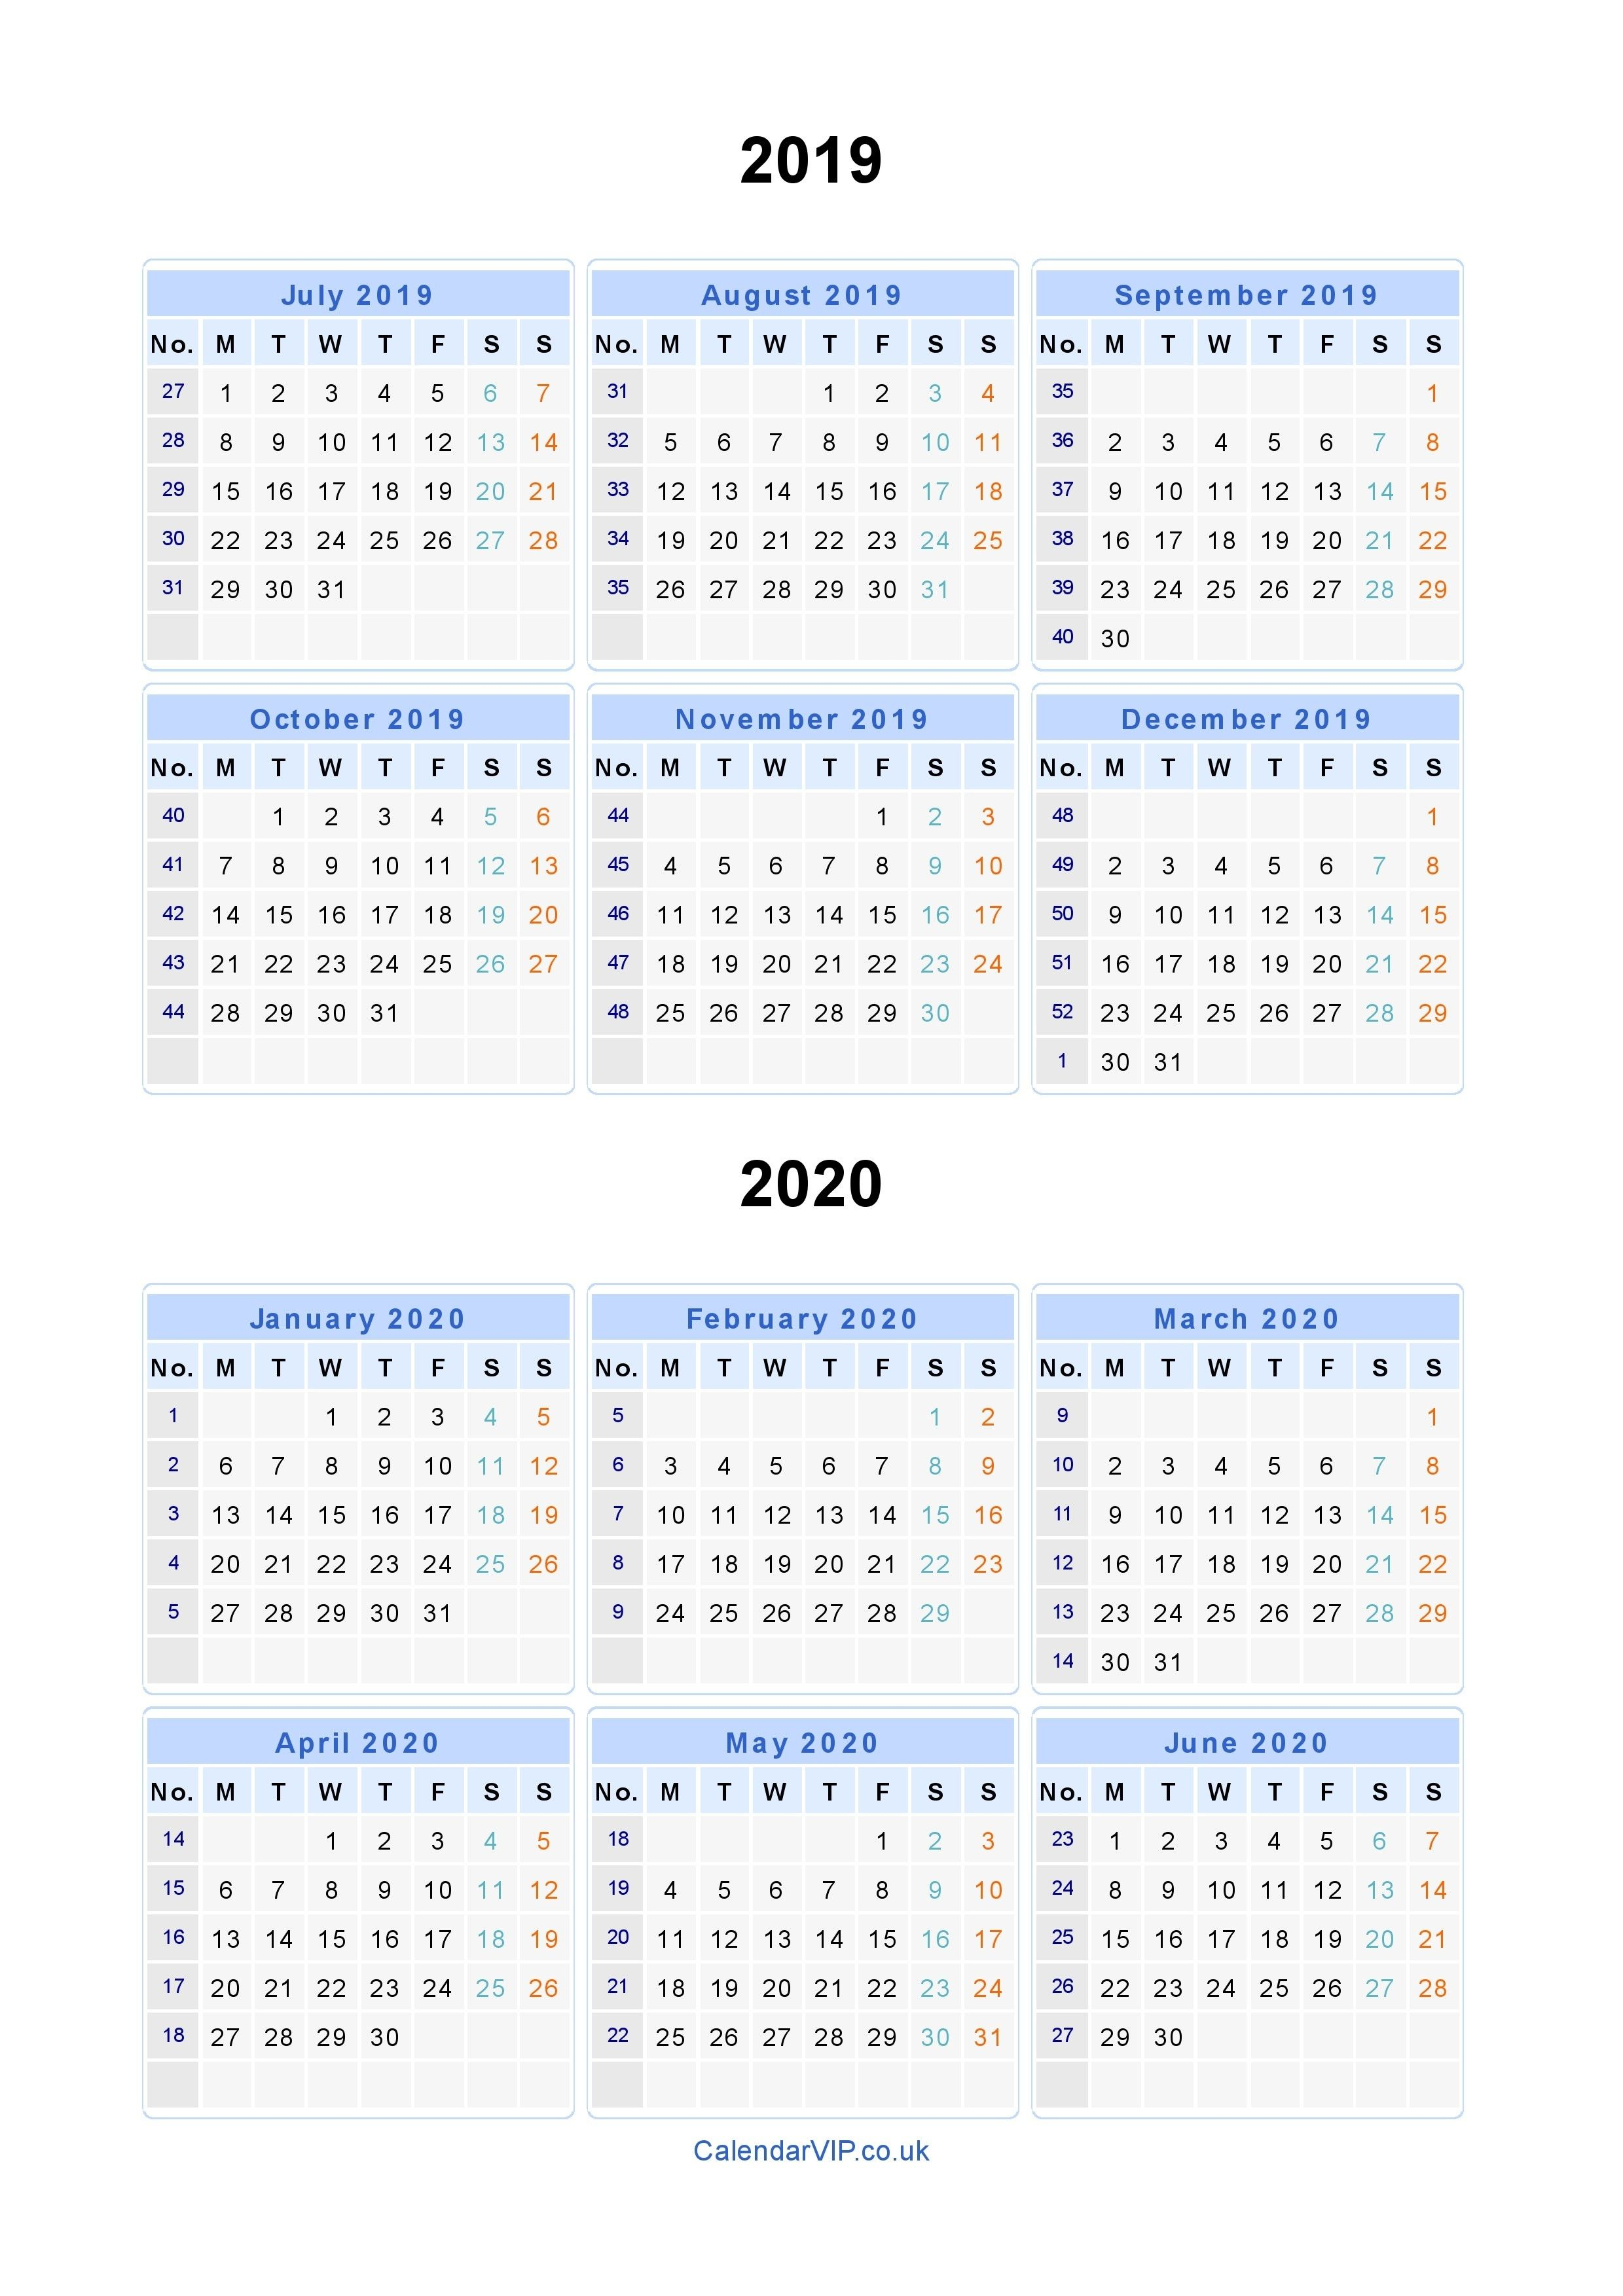 Split Year Calendars 2019 2020 - Calendar From July 2019 To With Uri Acadmic Year 2021 - 2020 Schedule